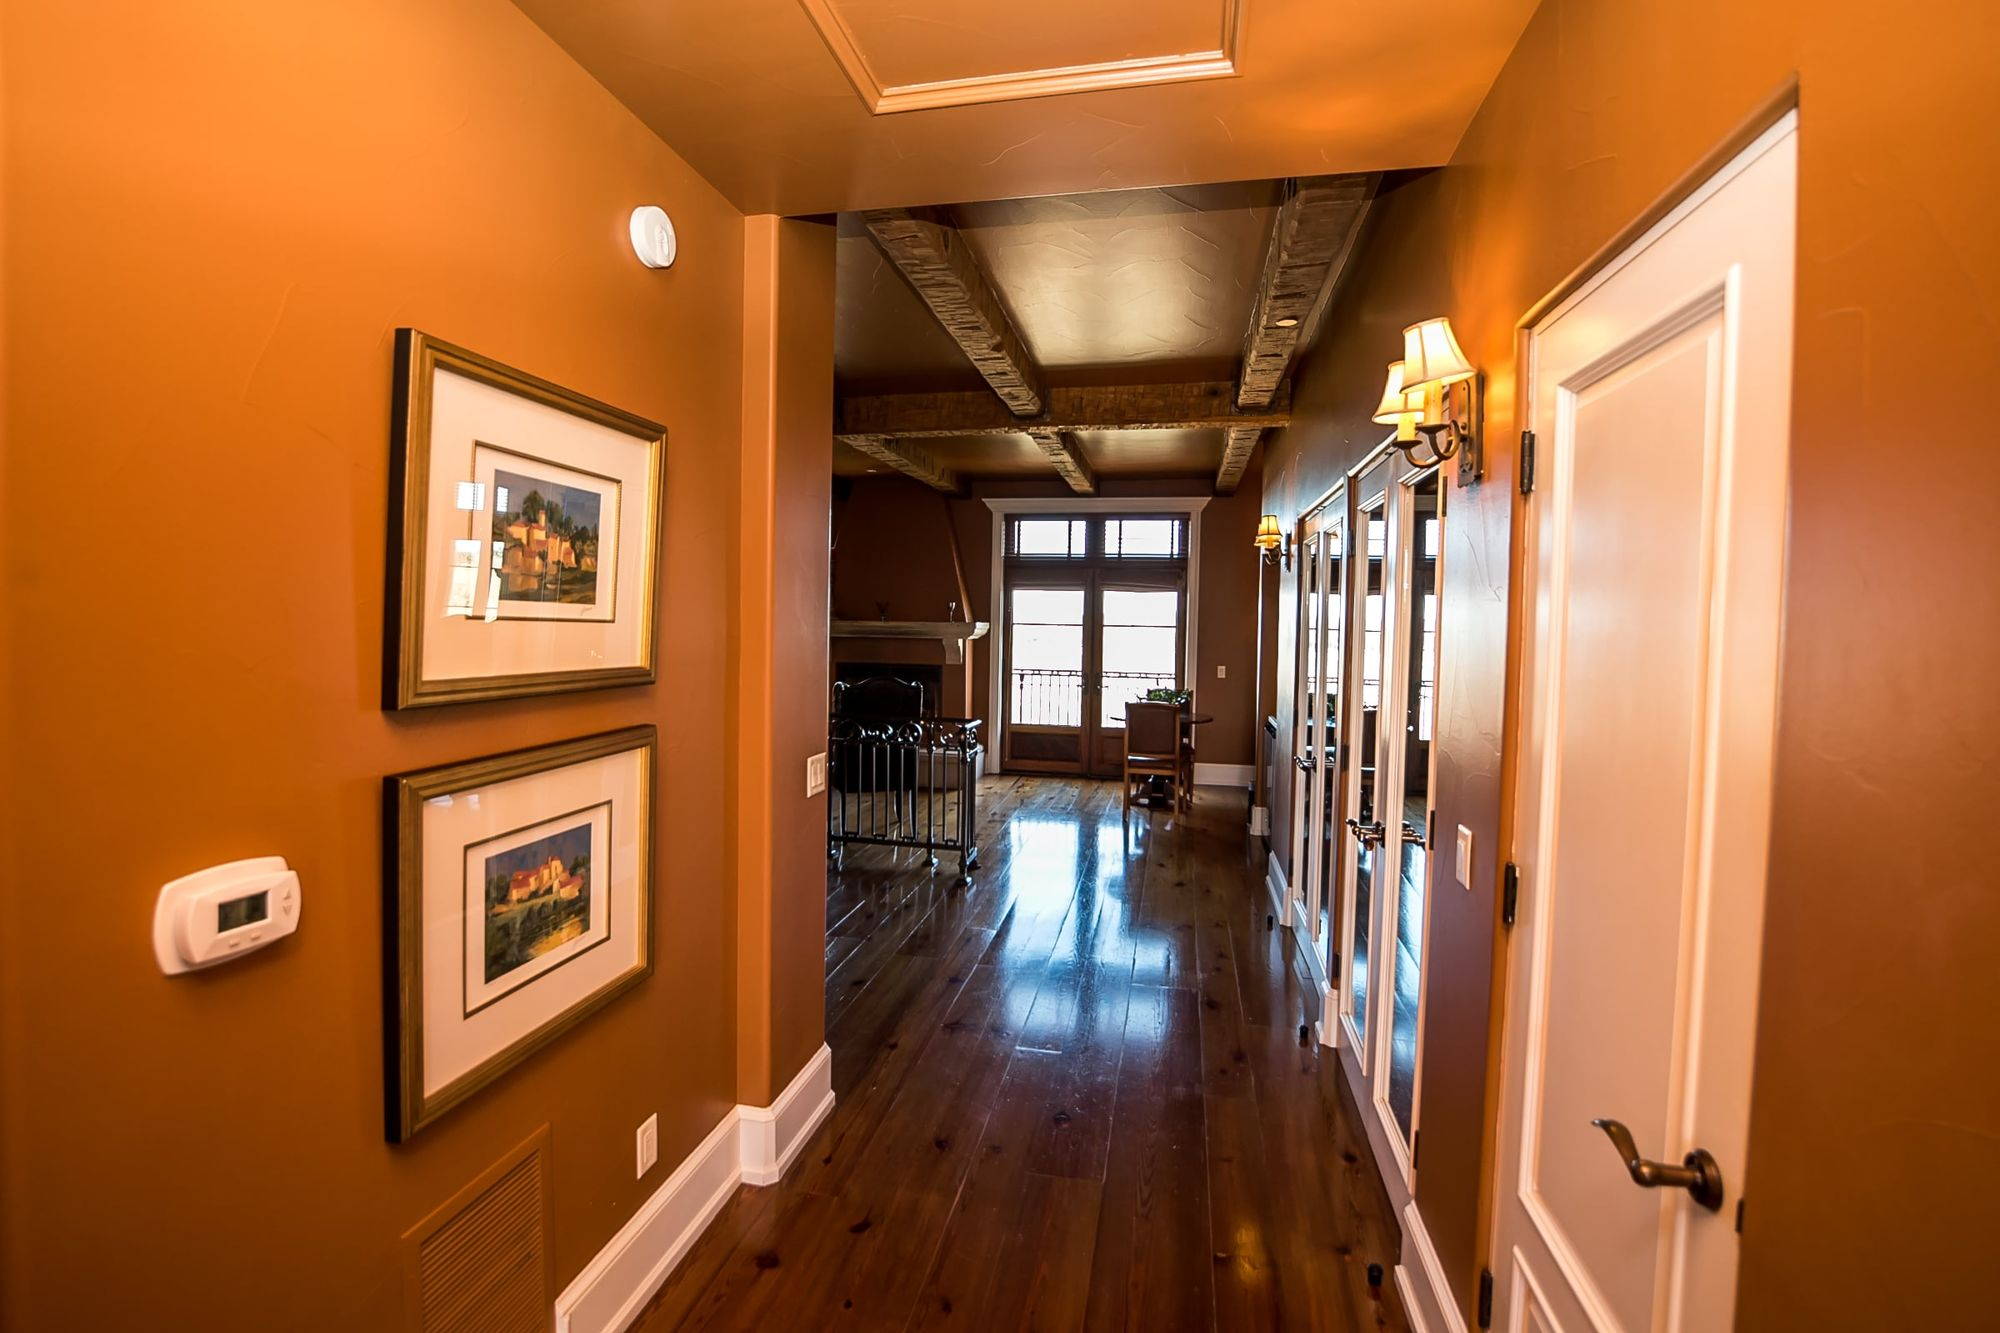 Hallway with French doors at the end